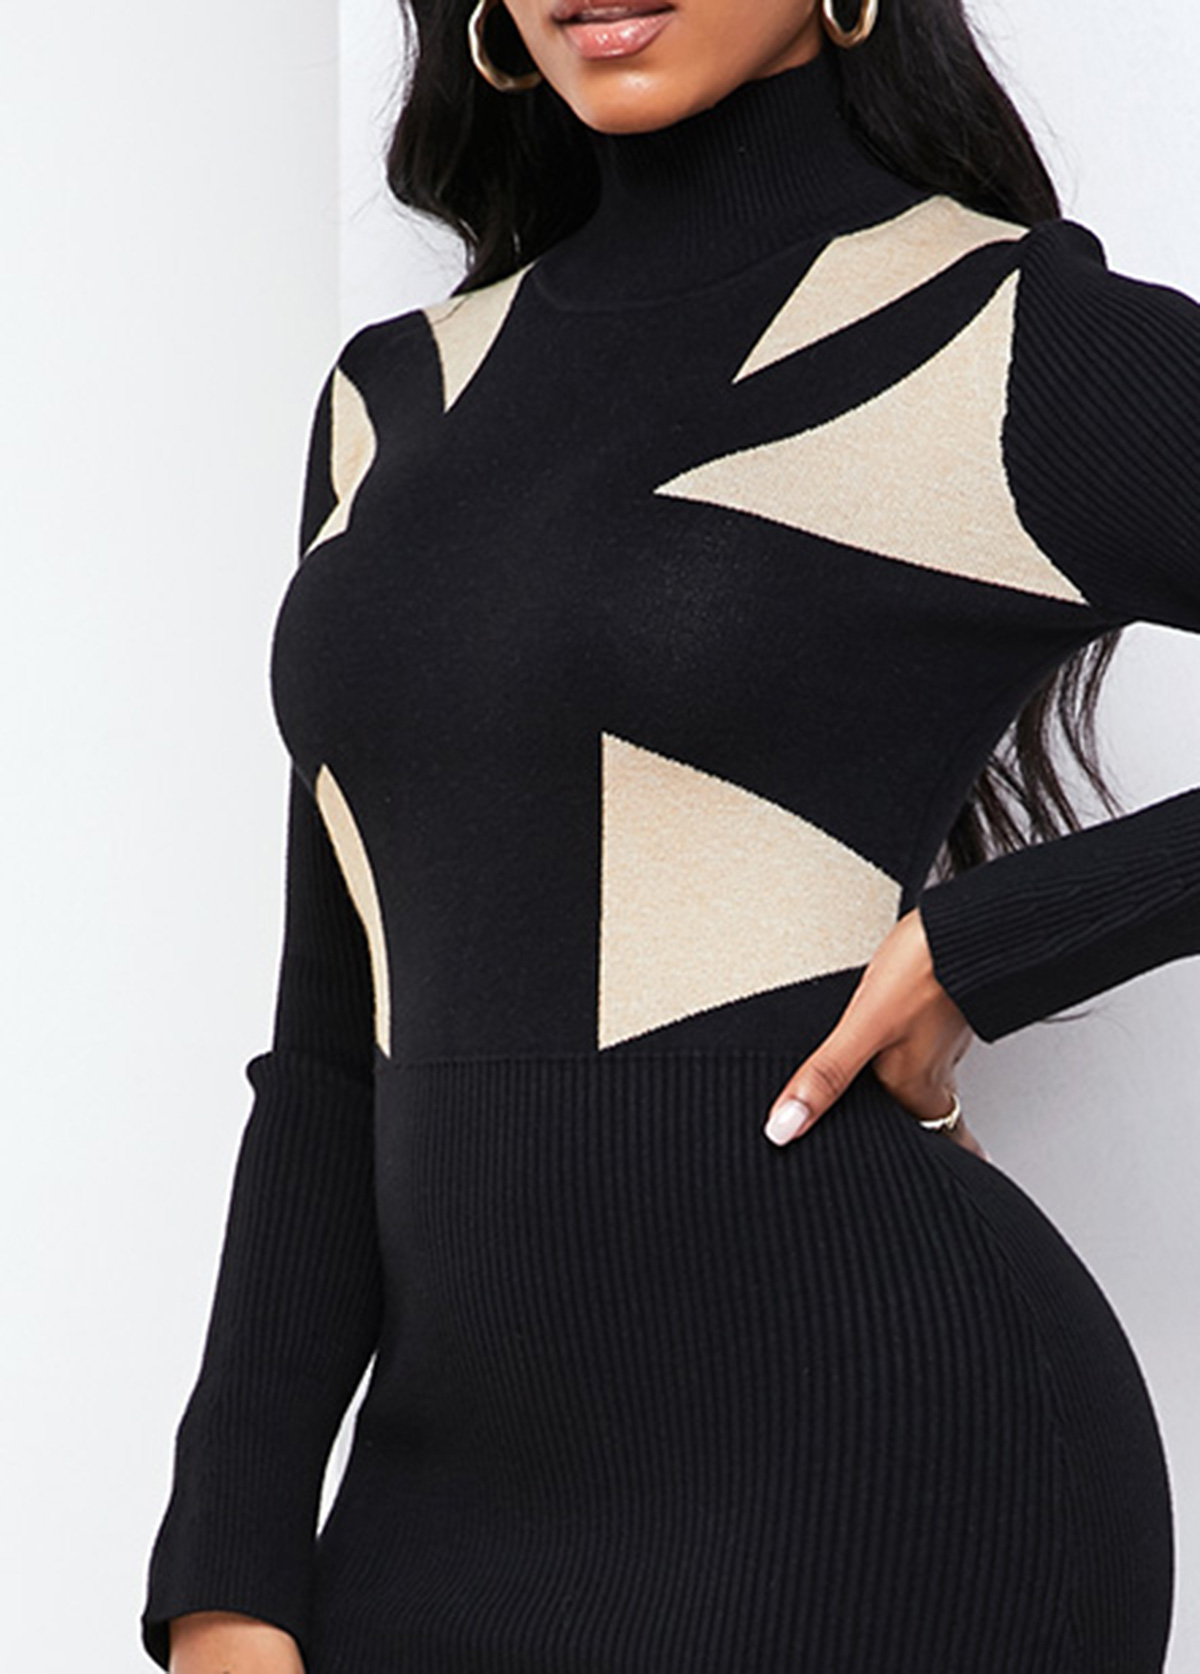 Long Sleeve Geometric Pattern Mermaid Hem Sweater Dress